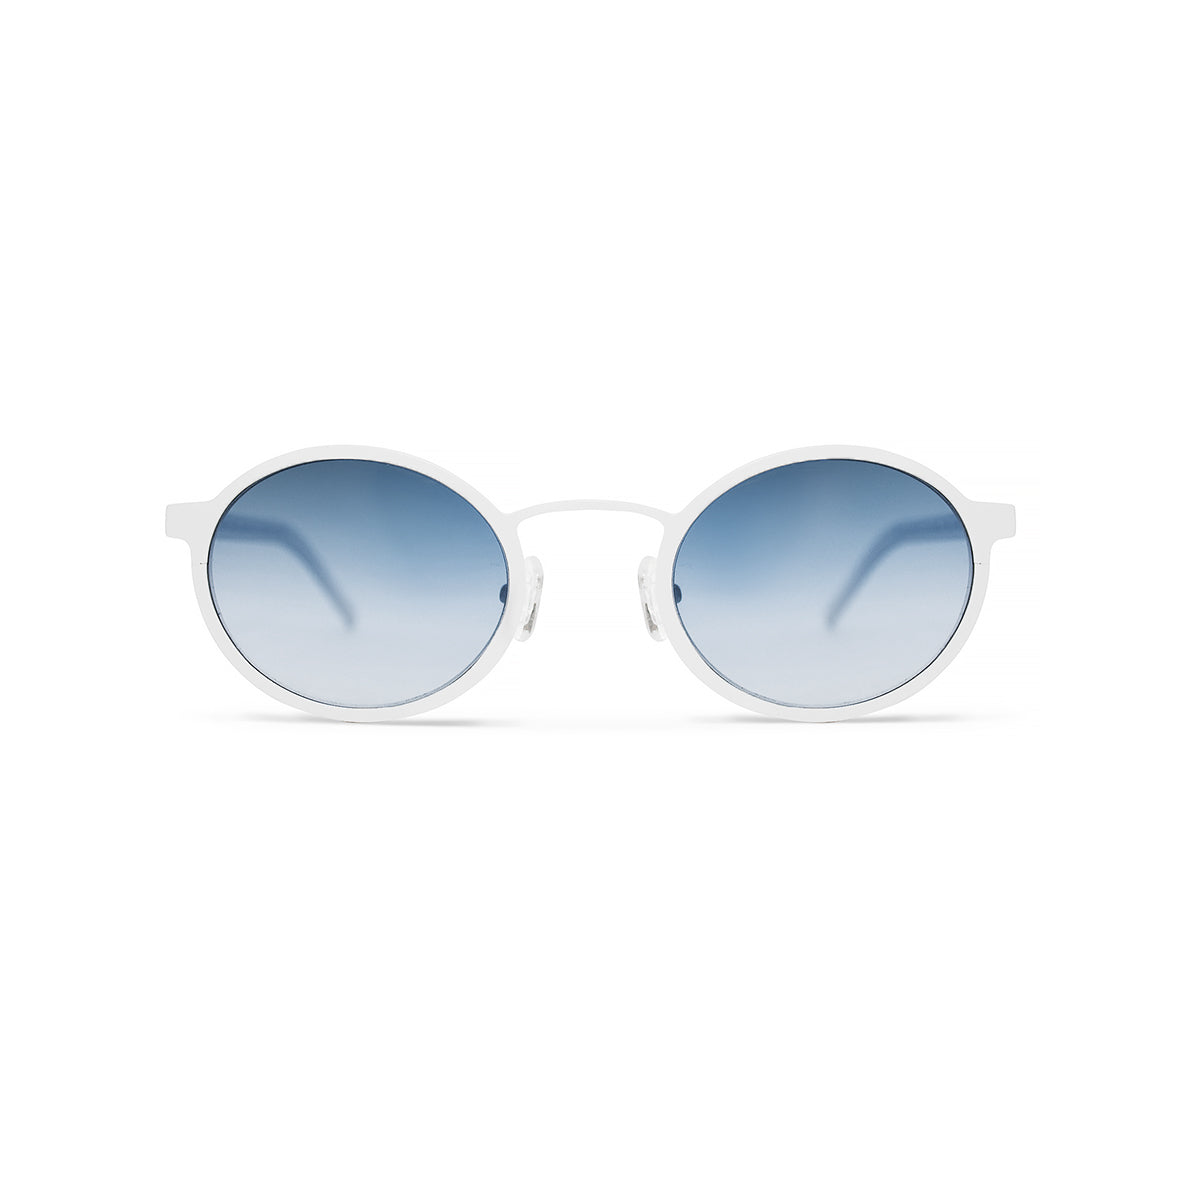 Metal. Porcelain. Ocean Lens. - BLYSZAK eyewear eyewear - eyewear, optical, sunglasses